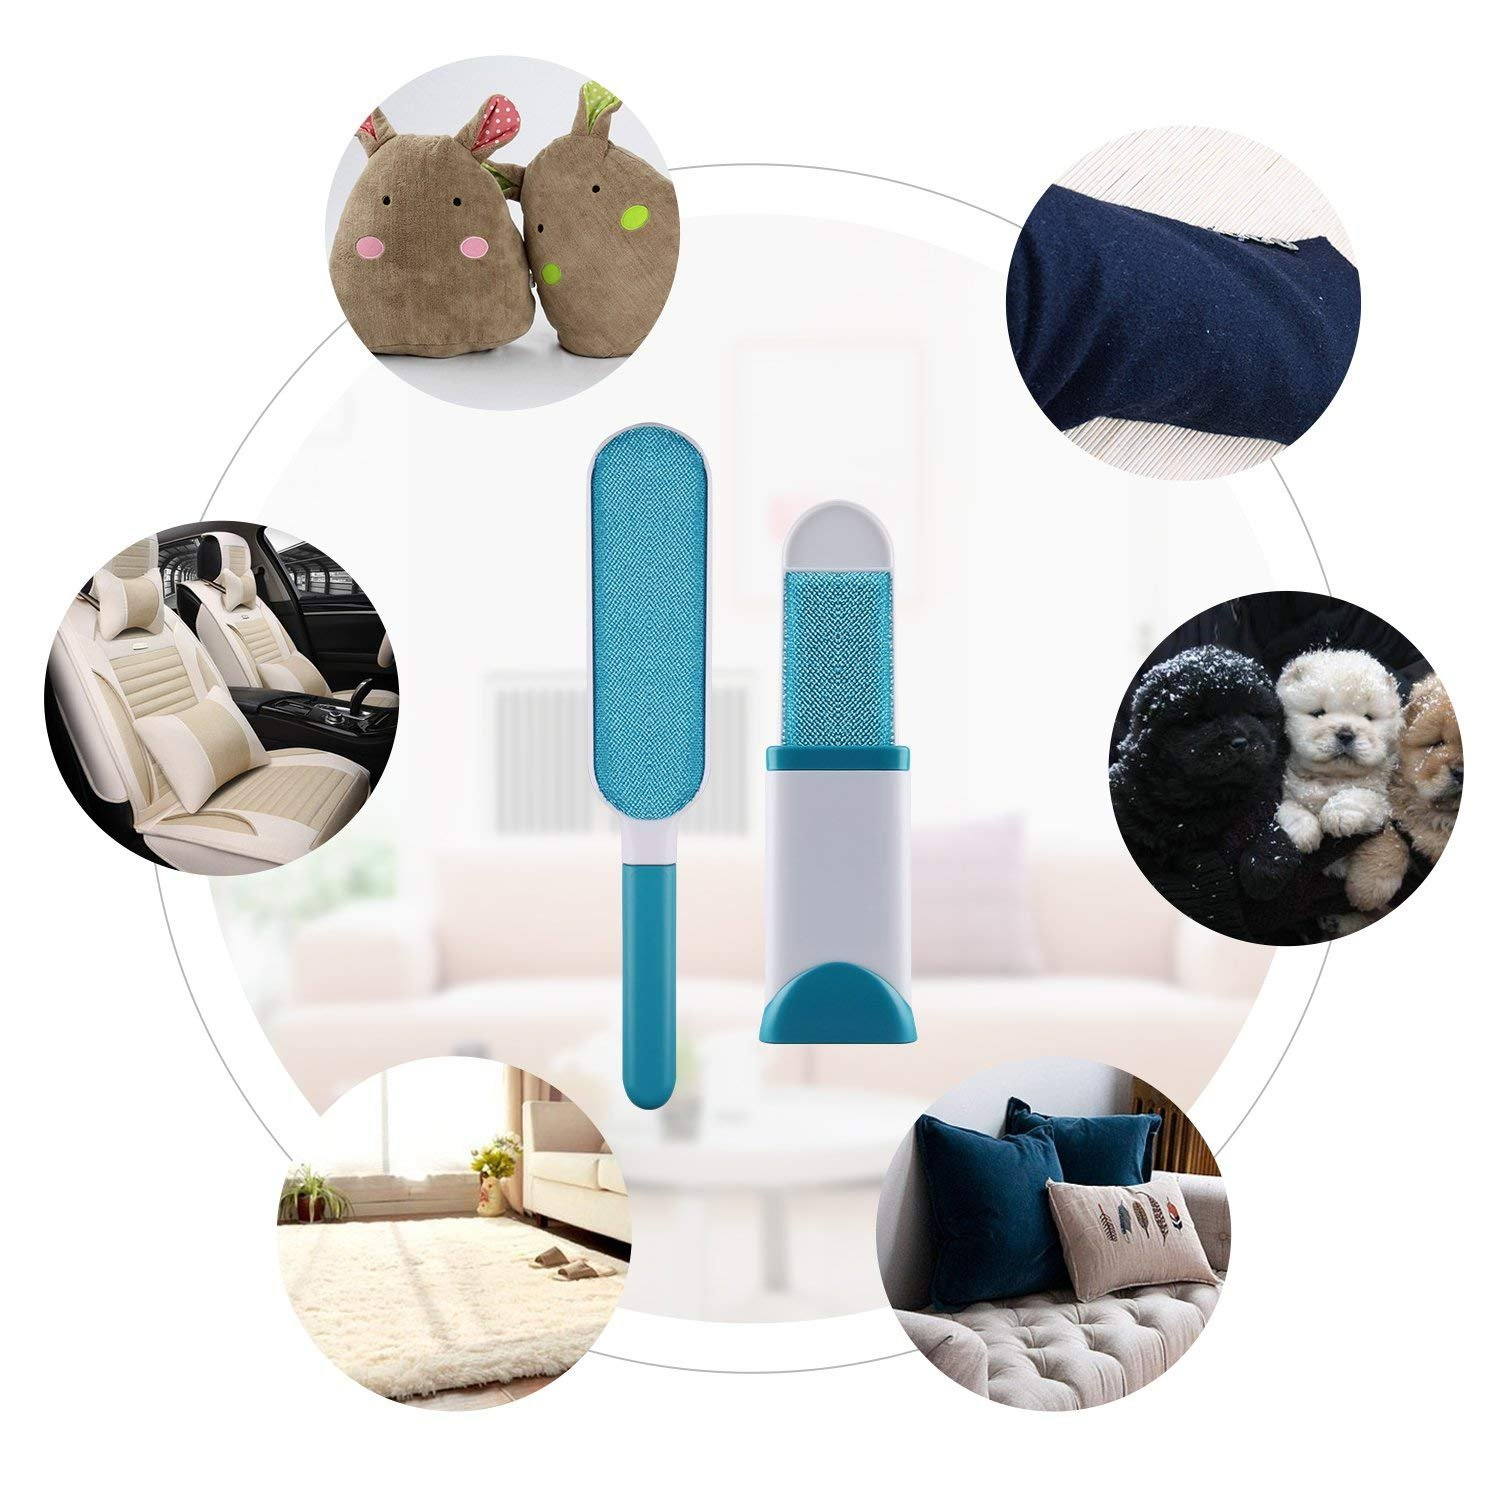 Fur Remover Pet Hair Clothes Lint, Reusable, Double-Sided Self-Cleaning Base Travel Size Brush. Improved Stronger Handle, Fabrics, Furniture, Carpets.